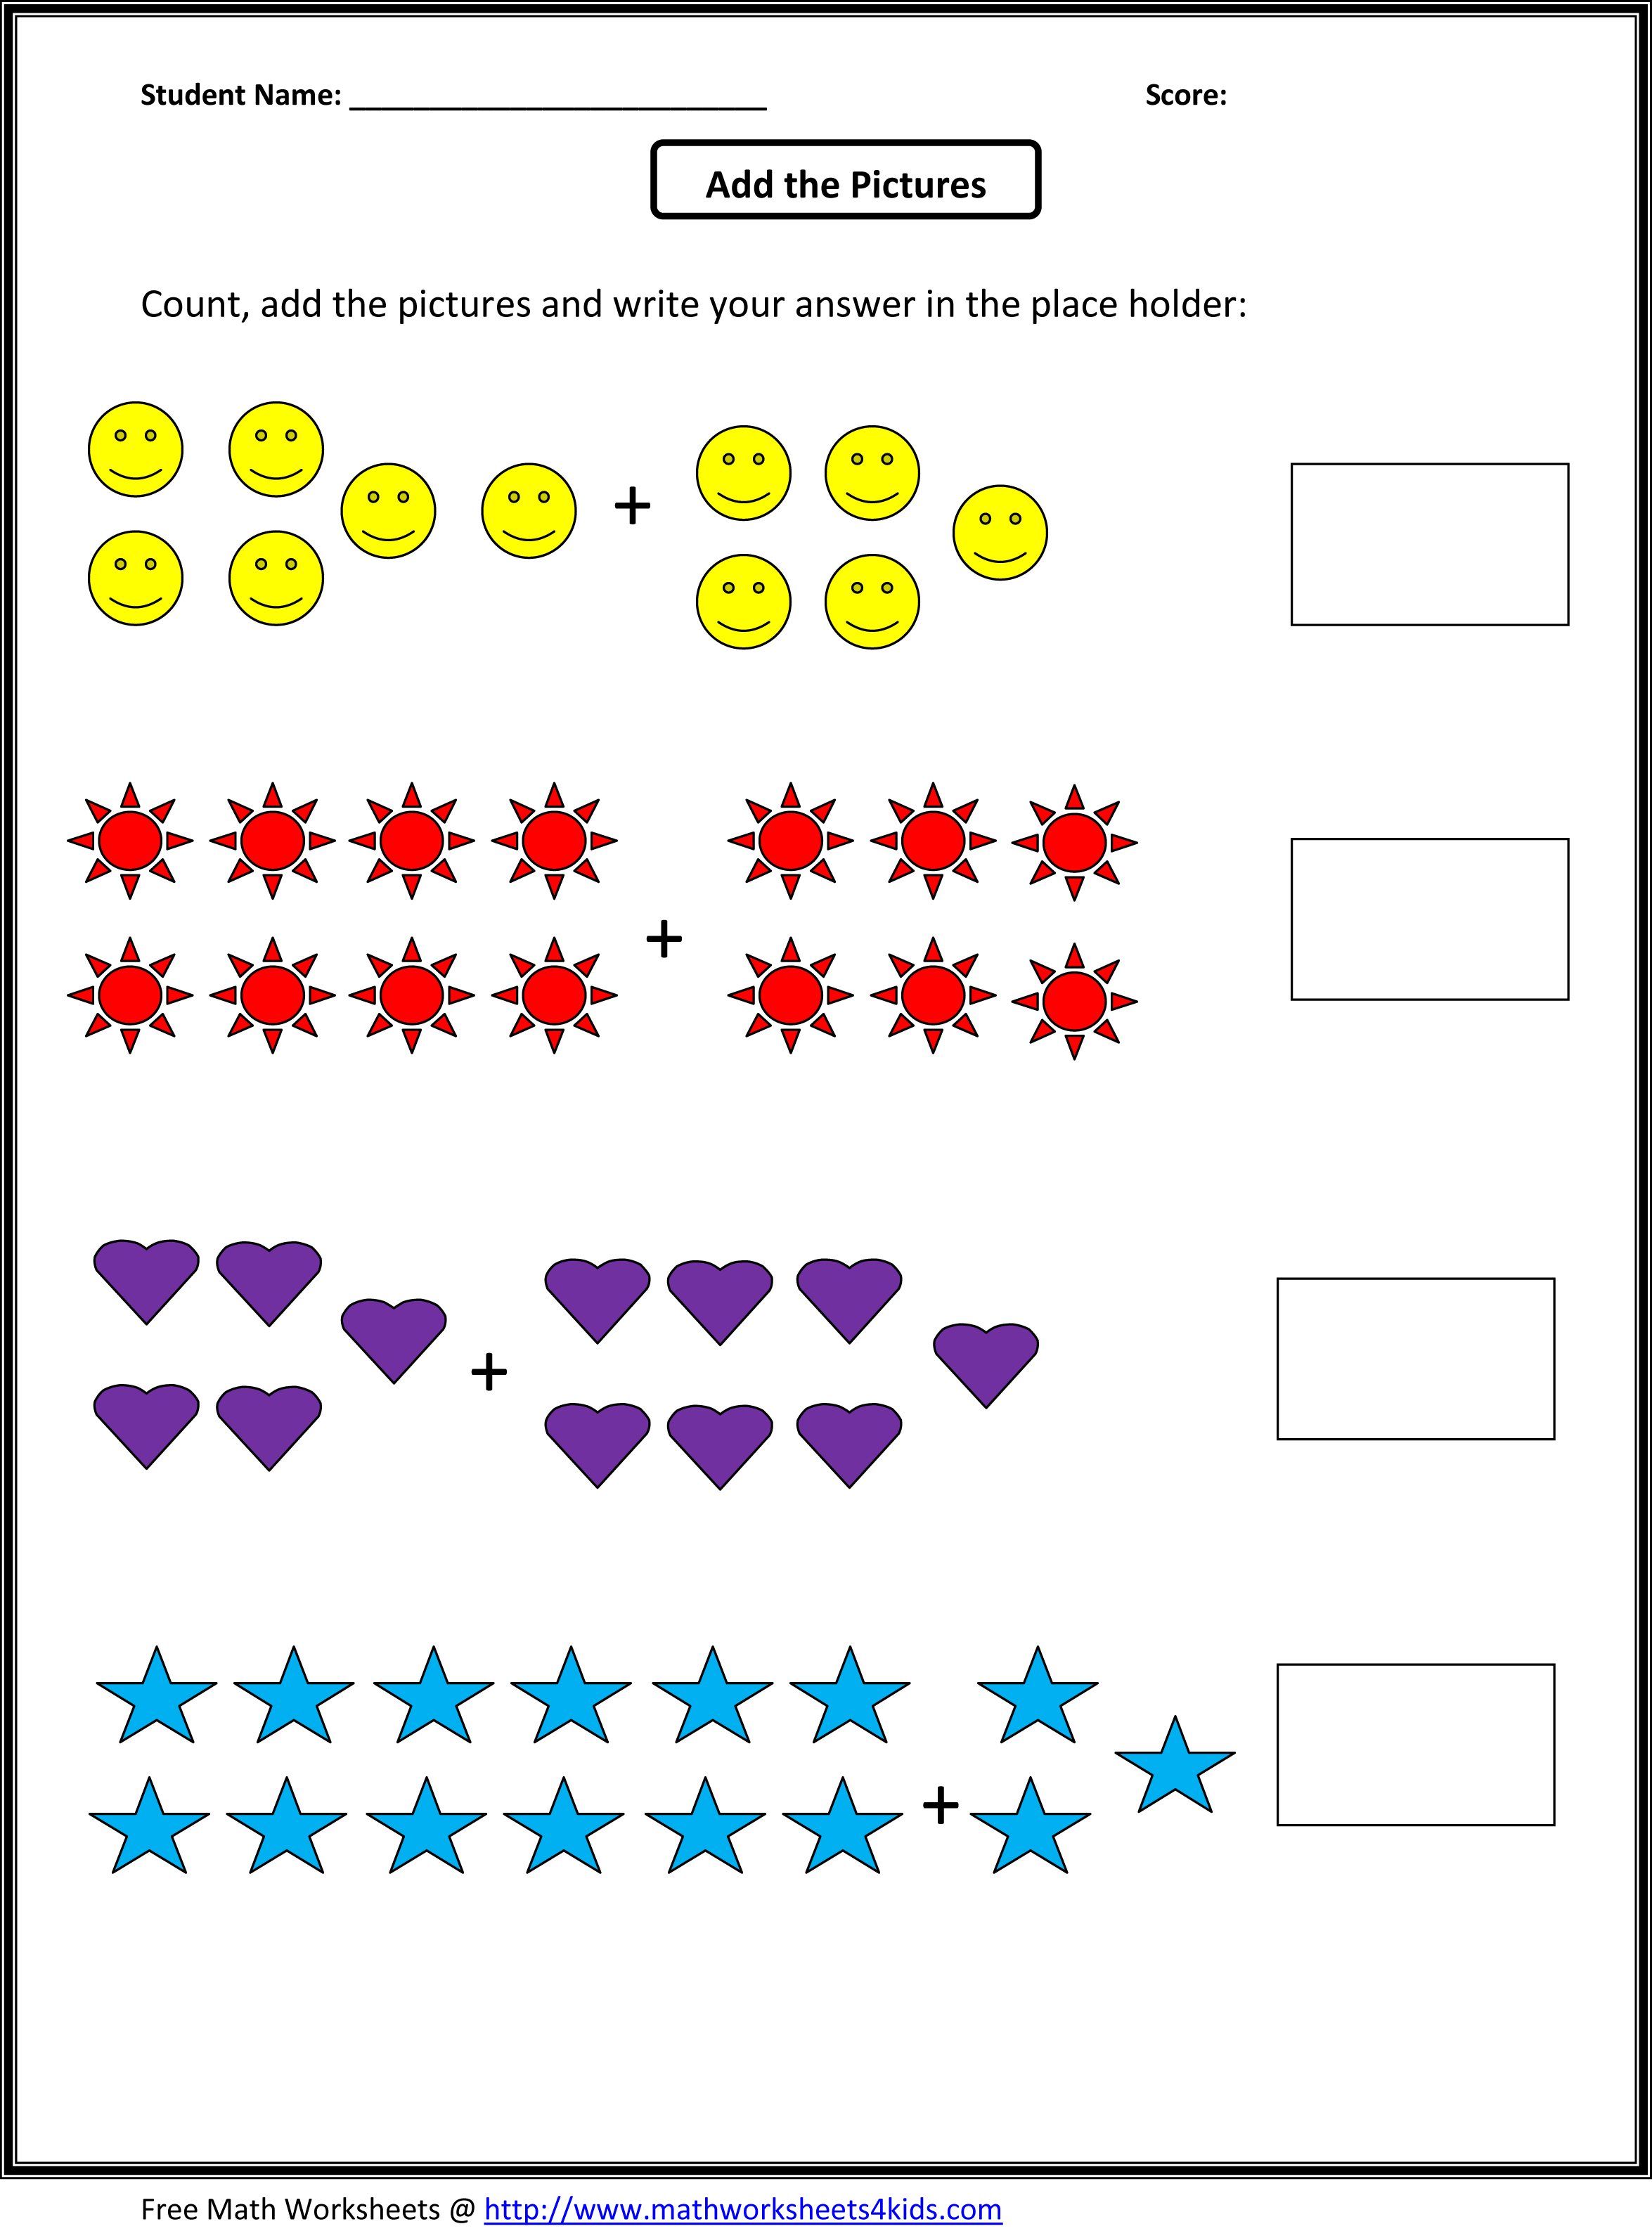 Weirdmailus  Remarkable Grade  Maths Worksheet  Reocurent With Entrancing Math Worksheets For St Grade Free  Reocurent With Charming Find The Letter Worksheet Also Regular Irregular Verbs Worksheet In Addition  Digit Division Worksheets And Prewriting Strokes Worksheets As Well As Changing Percents To Decimals Worksheets Additionally Find The Perimeter Worksheet From Reocurentcom With Weirdmailus  Entrancing Grade  Maths Worksheet  Reocurent With Charming Math Worksheets For St Grade Free  Reocurent And Remarkable Find The Letter Worksheet Also Regular Irregular Verbs Worksheet In Addition  Digit Division Worksheets From Reocurentcom